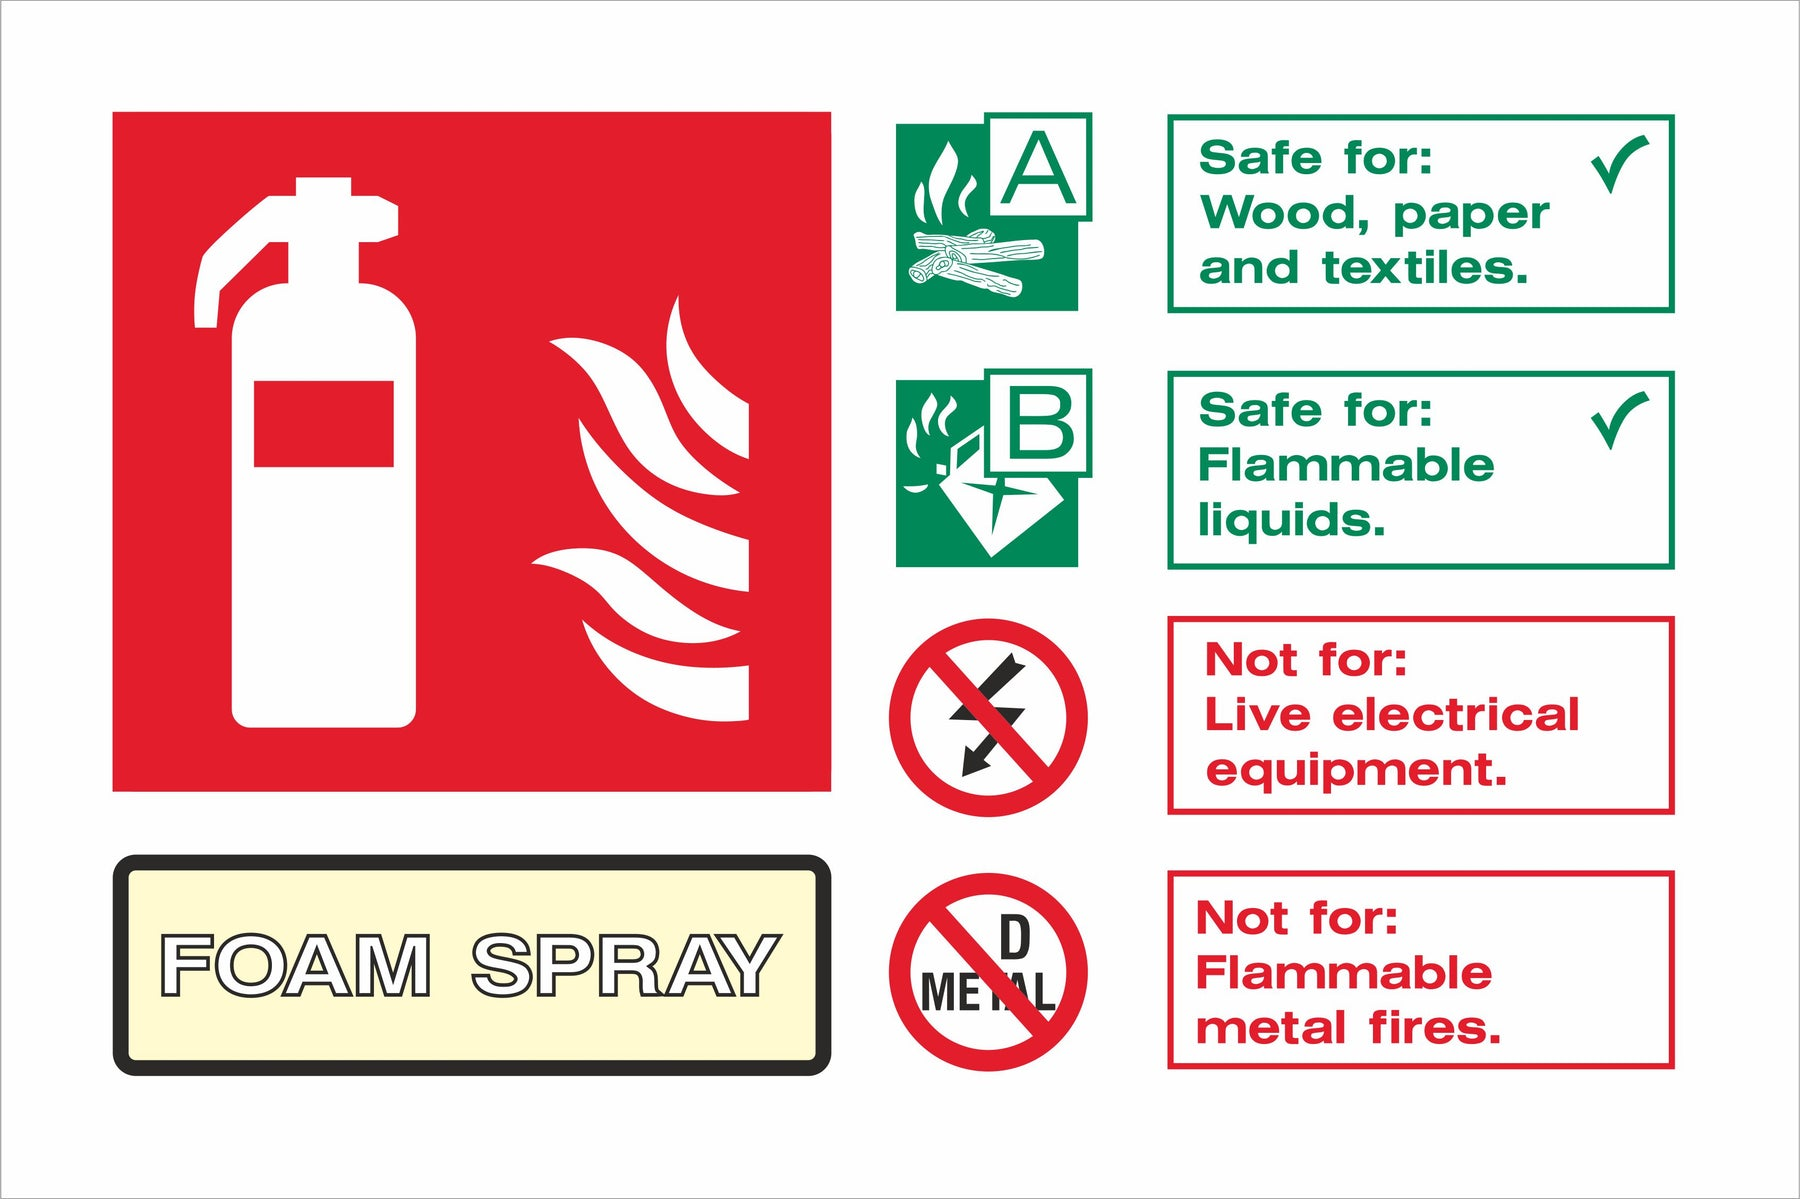 FOAM SPRAY - Fire Extinguisher